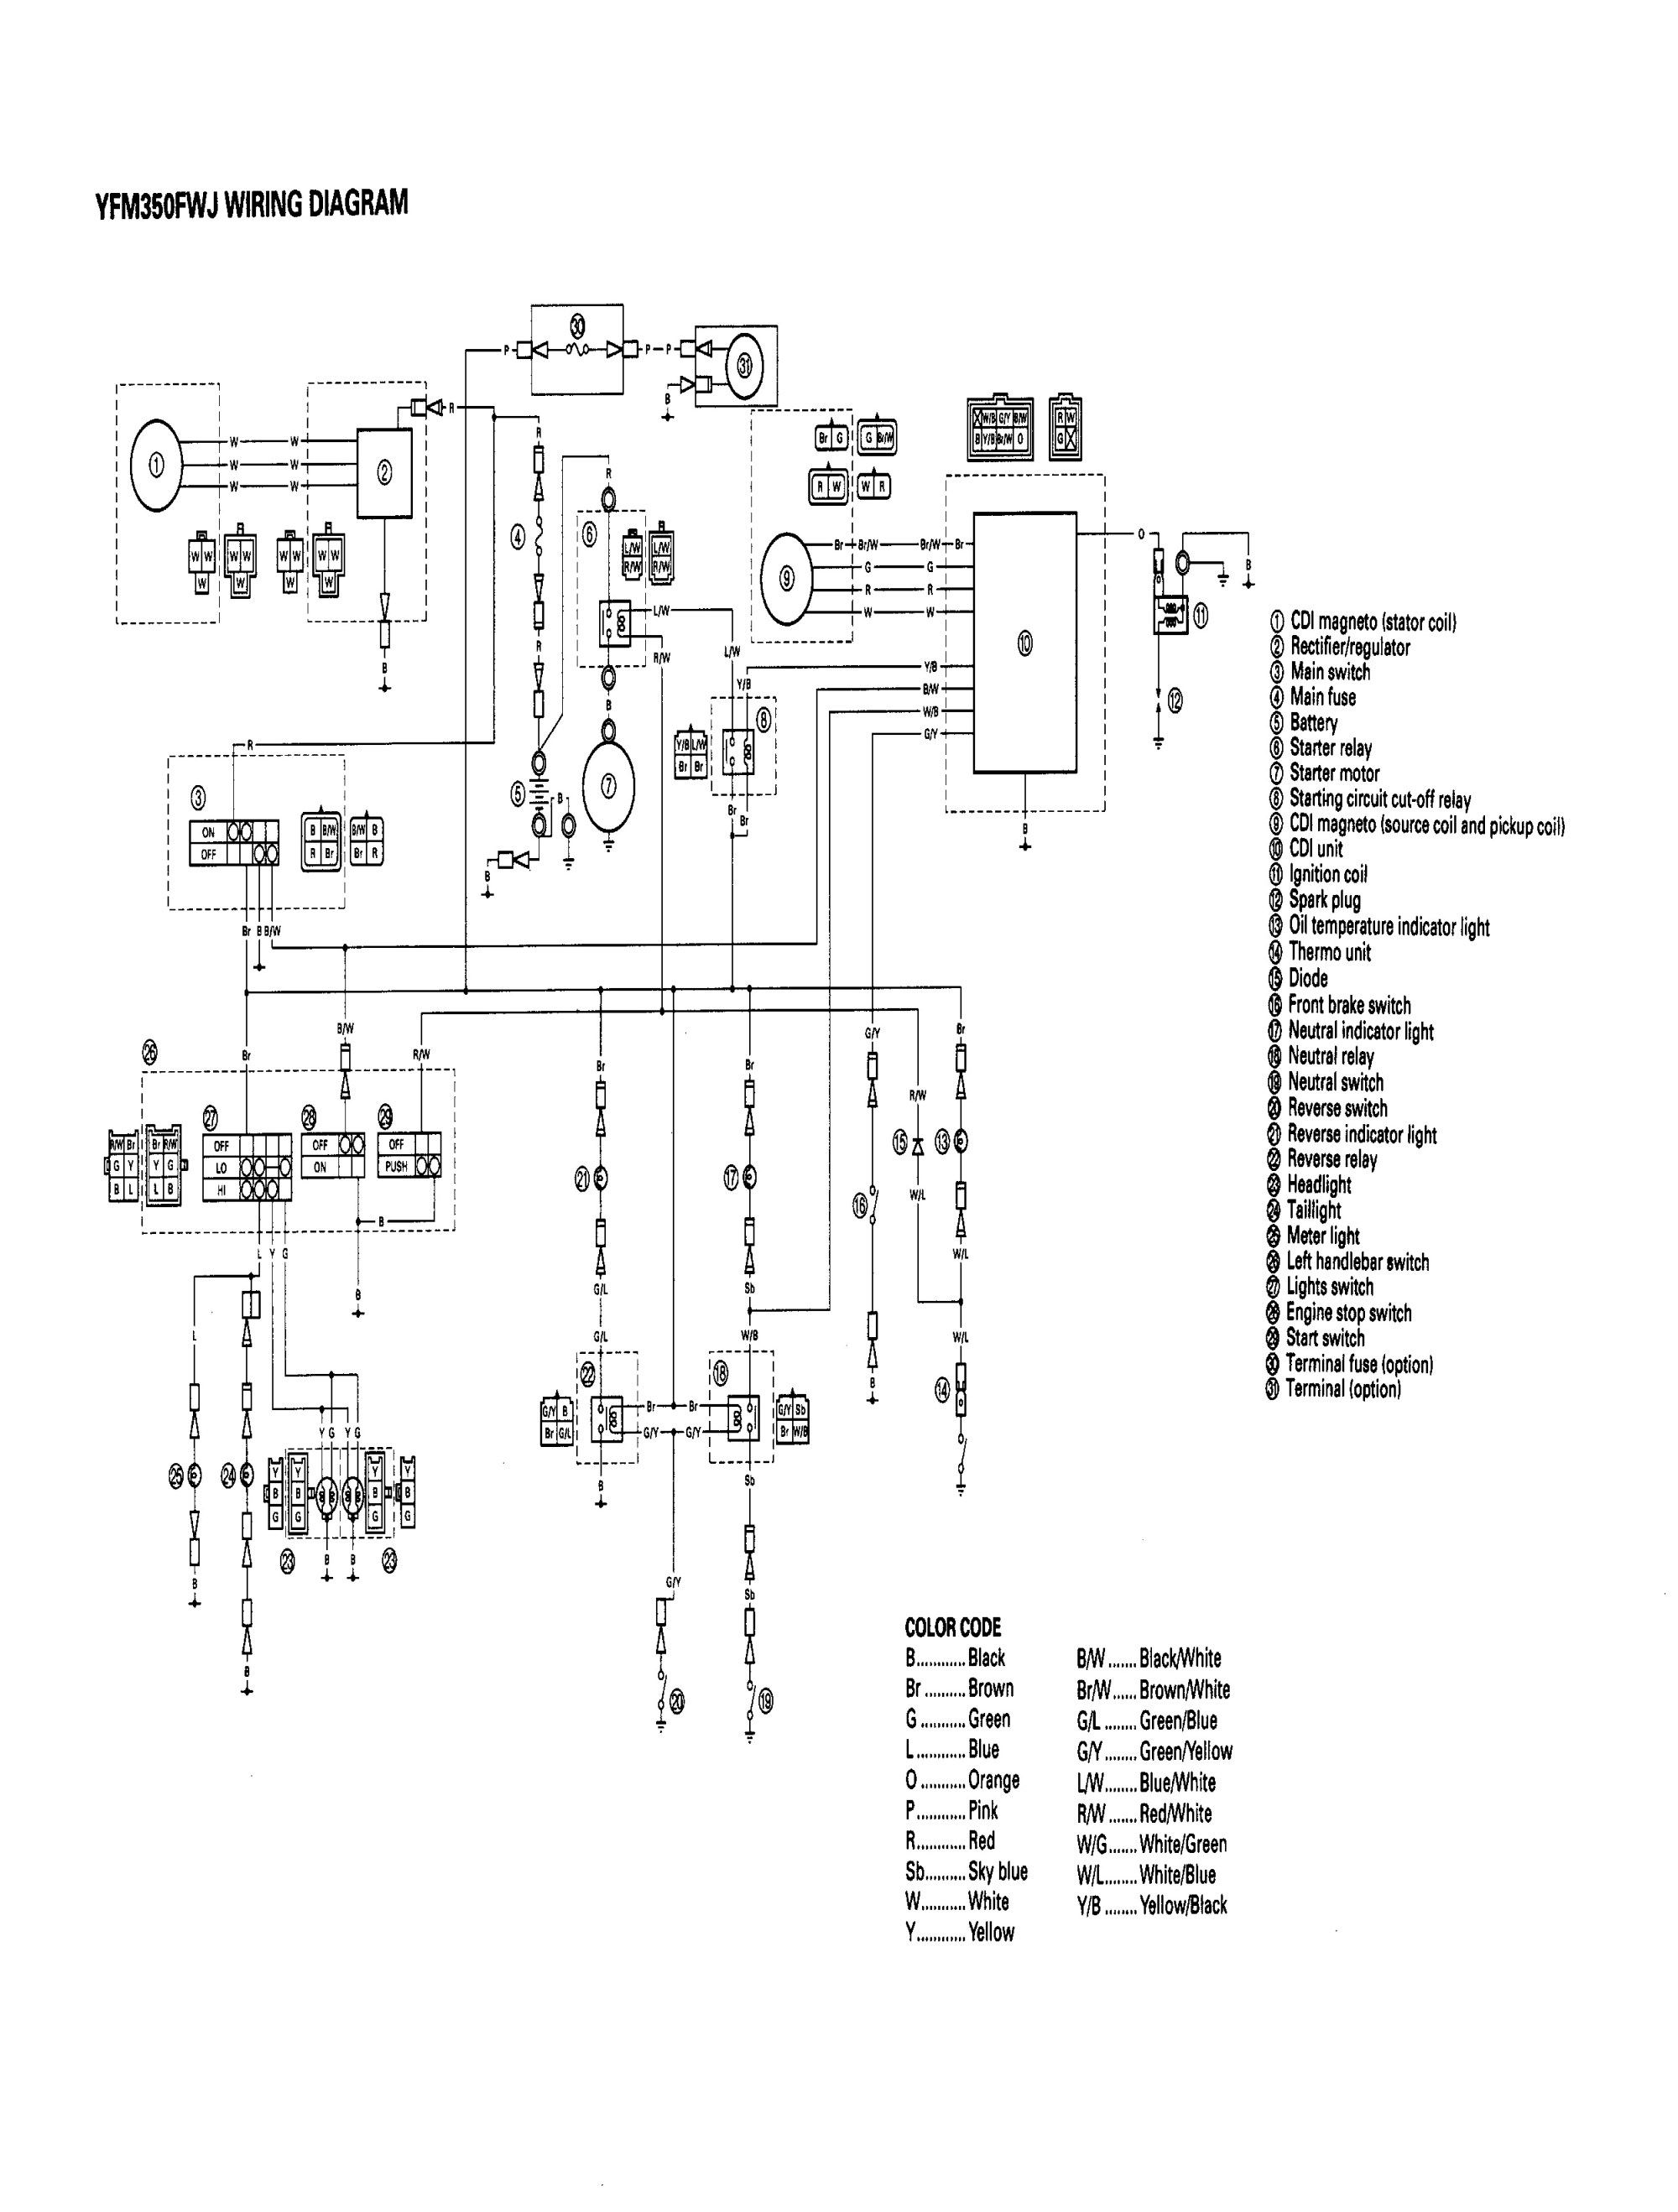 hight resolution of yamaha grizzly 660 wiring diagram wiring diagram for yamaha kodiak 400 atv anything wiring diagrams